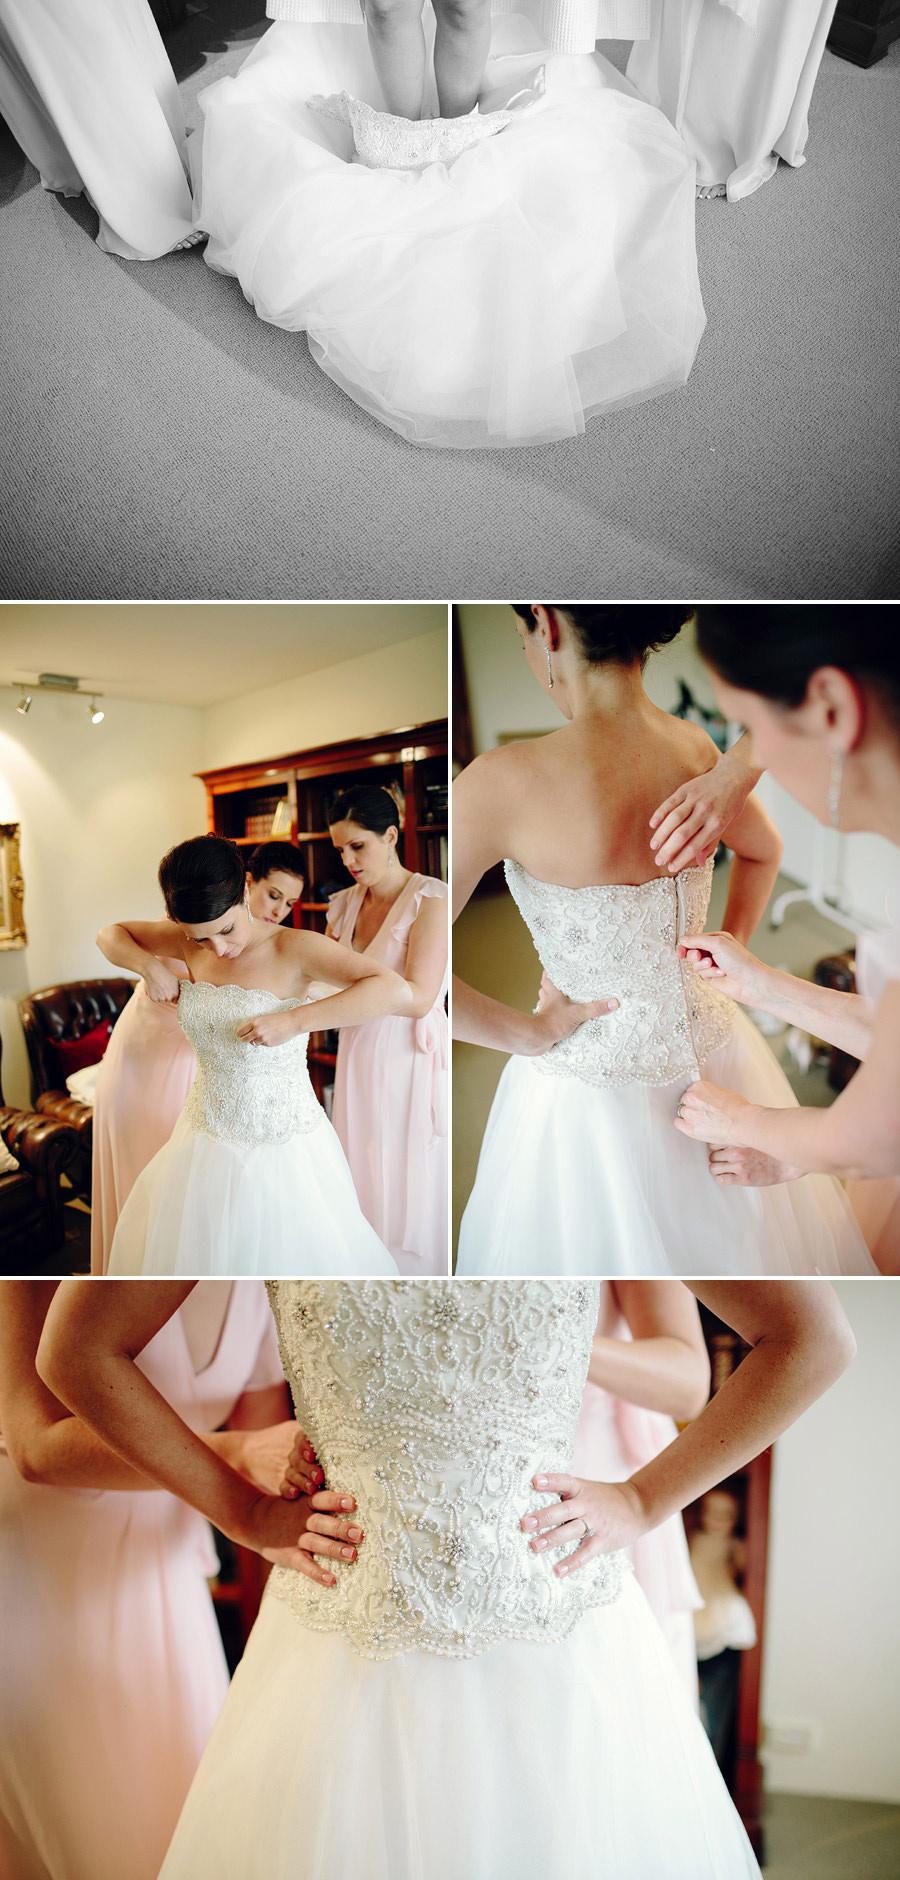 Timeless Wedding Photography: Bridesmaids dressing bride